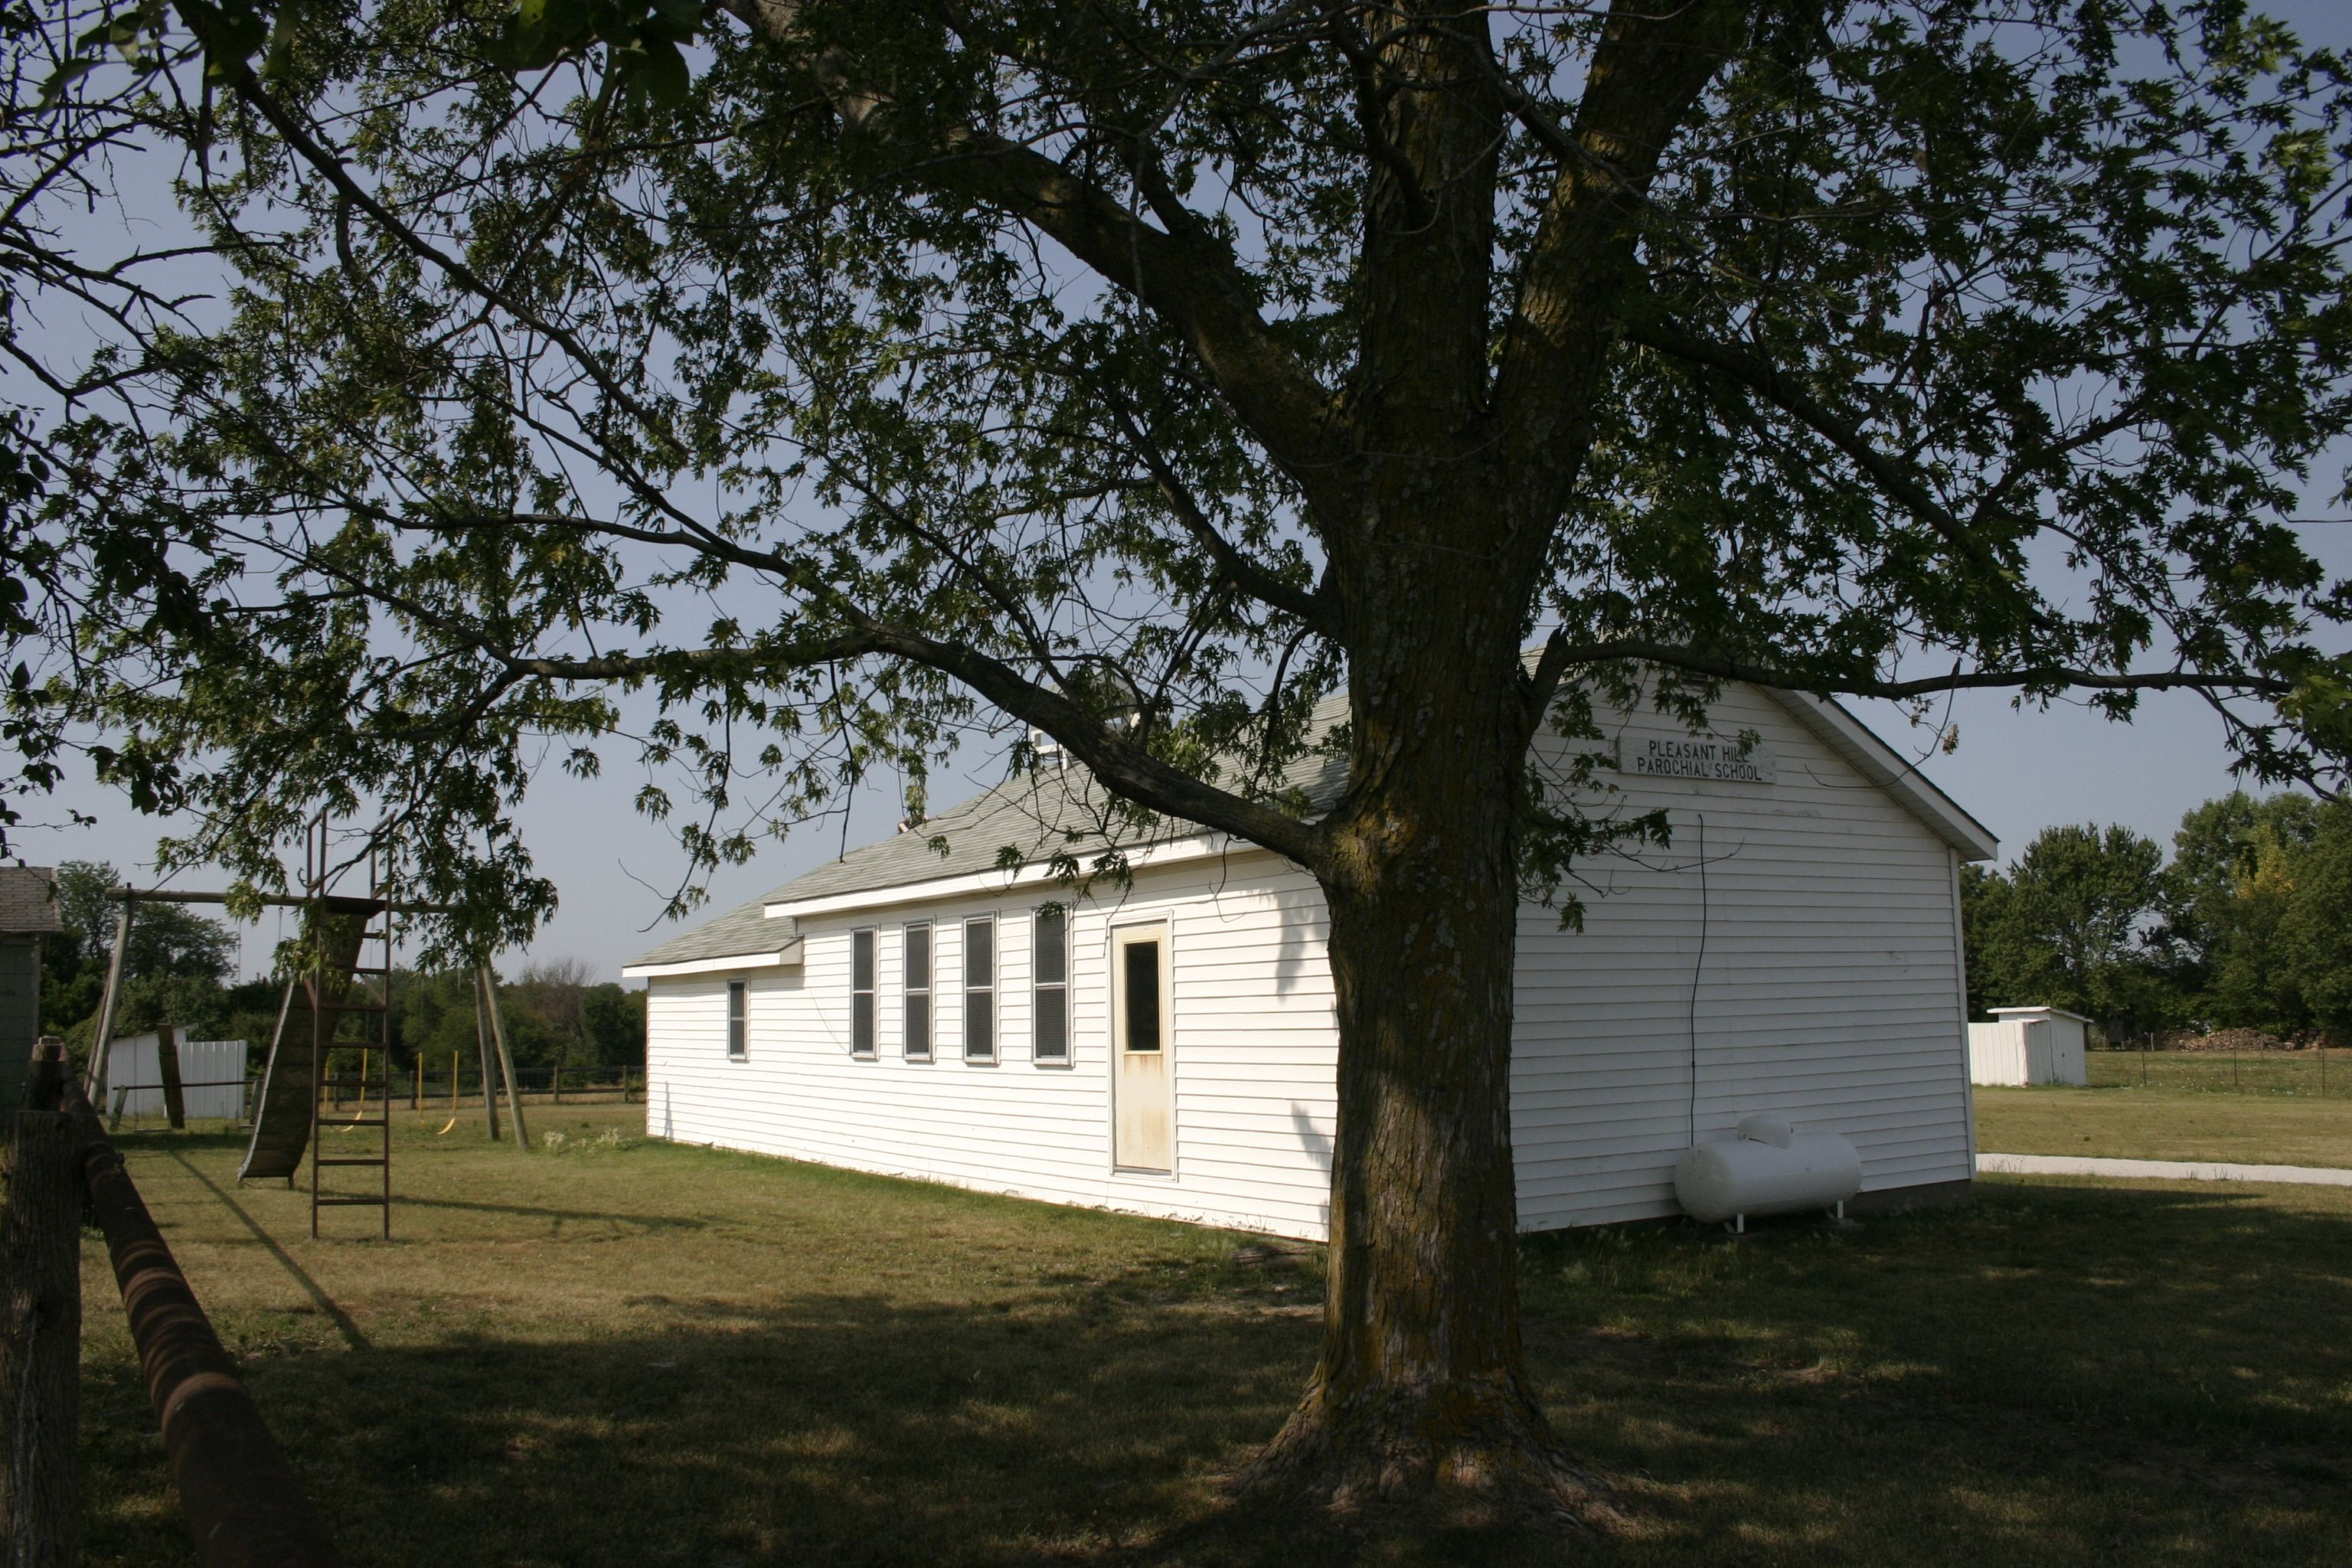 An Amish school in Jamesport MO